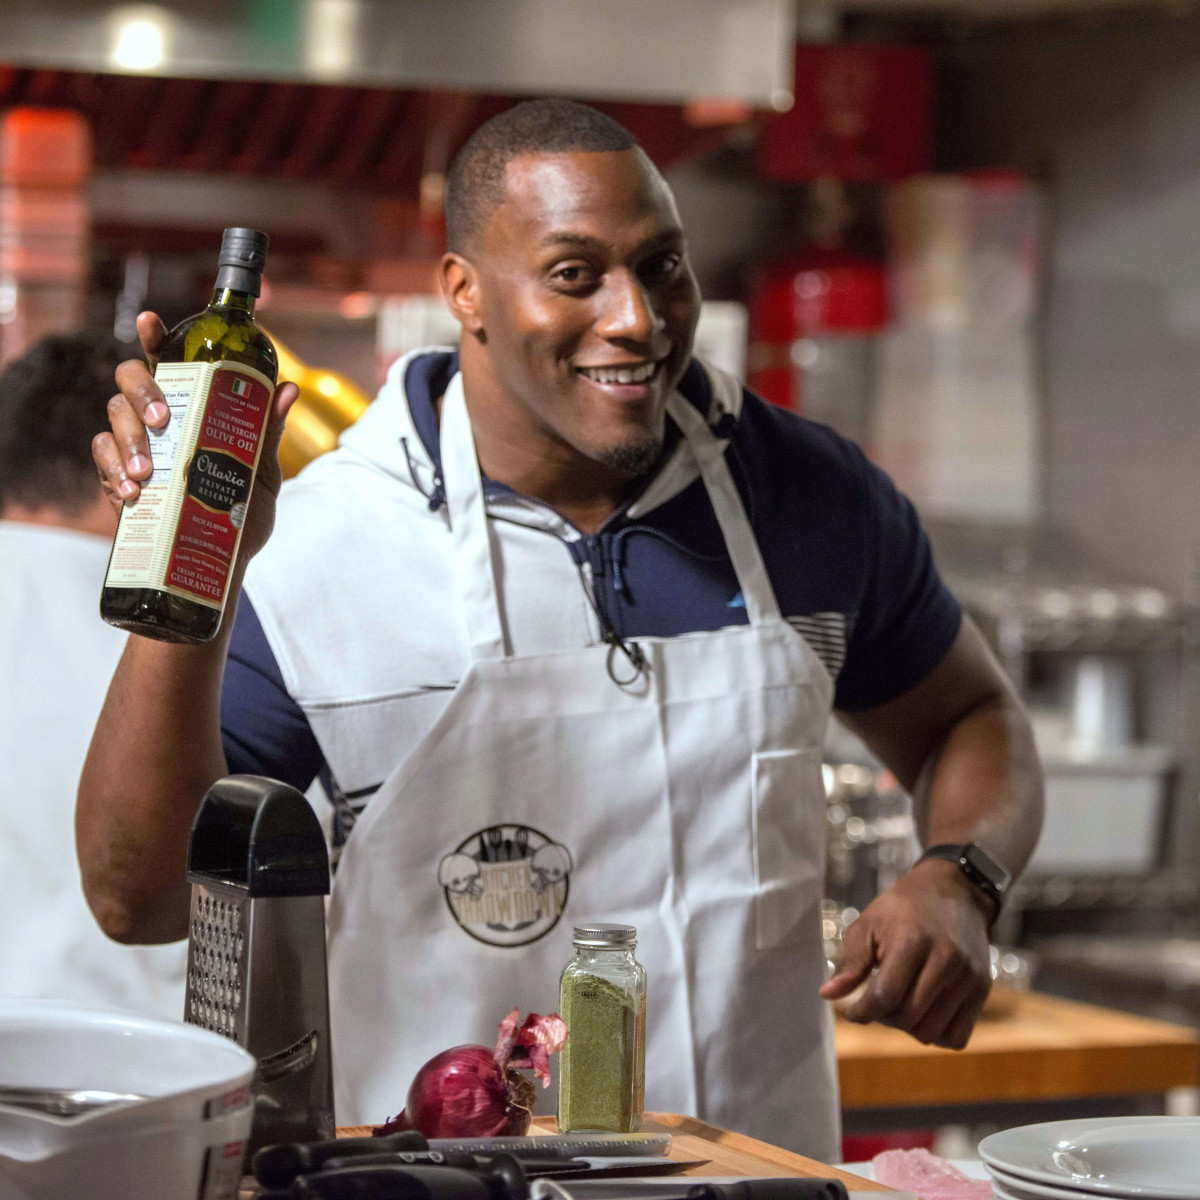 Houston, Kitchen Throwdown with Whitney Mercilus, Jan 2017, Takeo Spikes